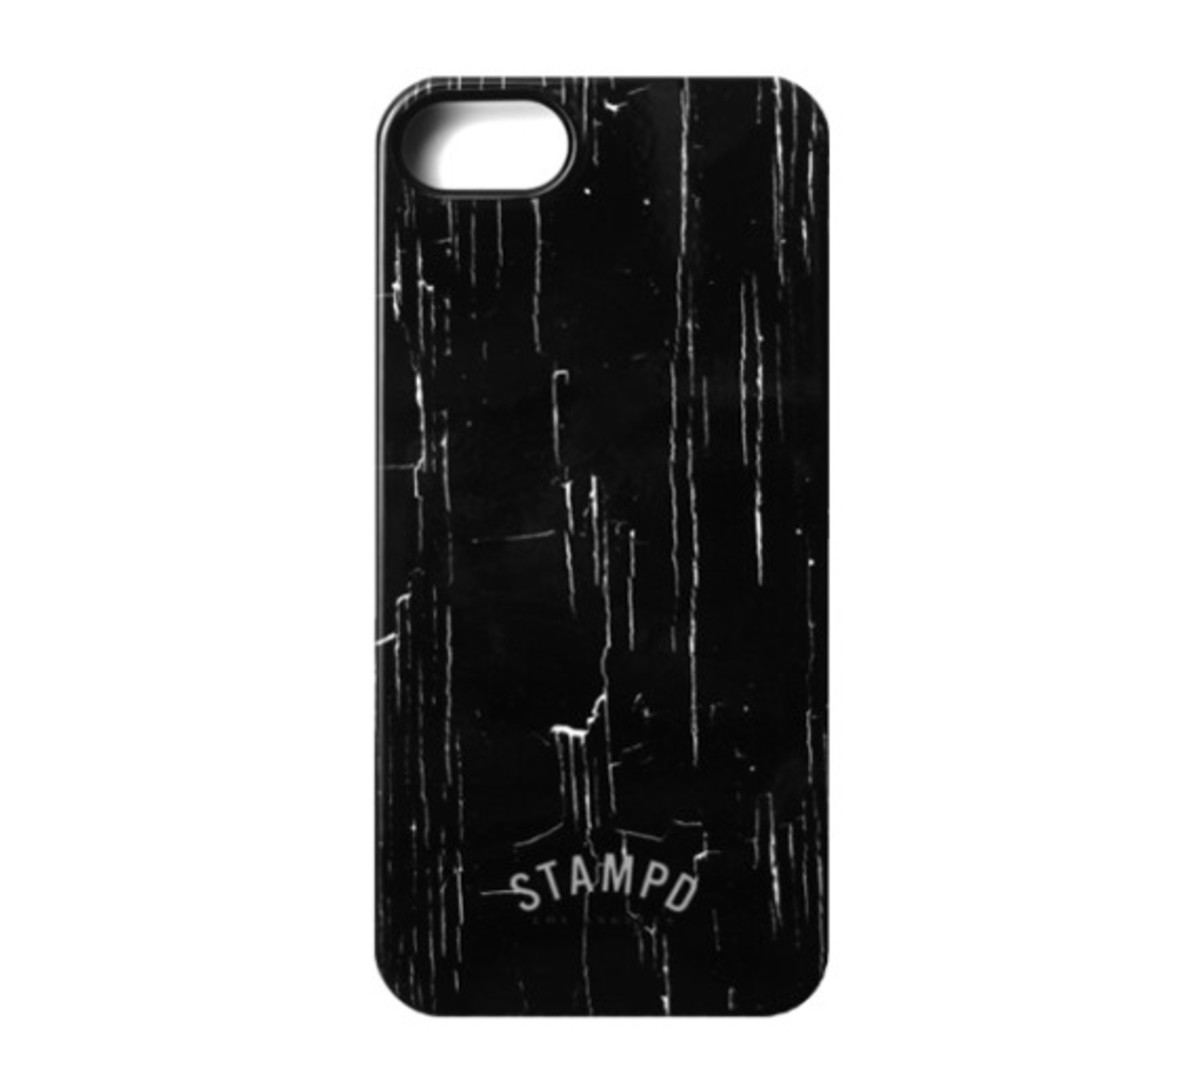 stampd-iphone-5-case-05